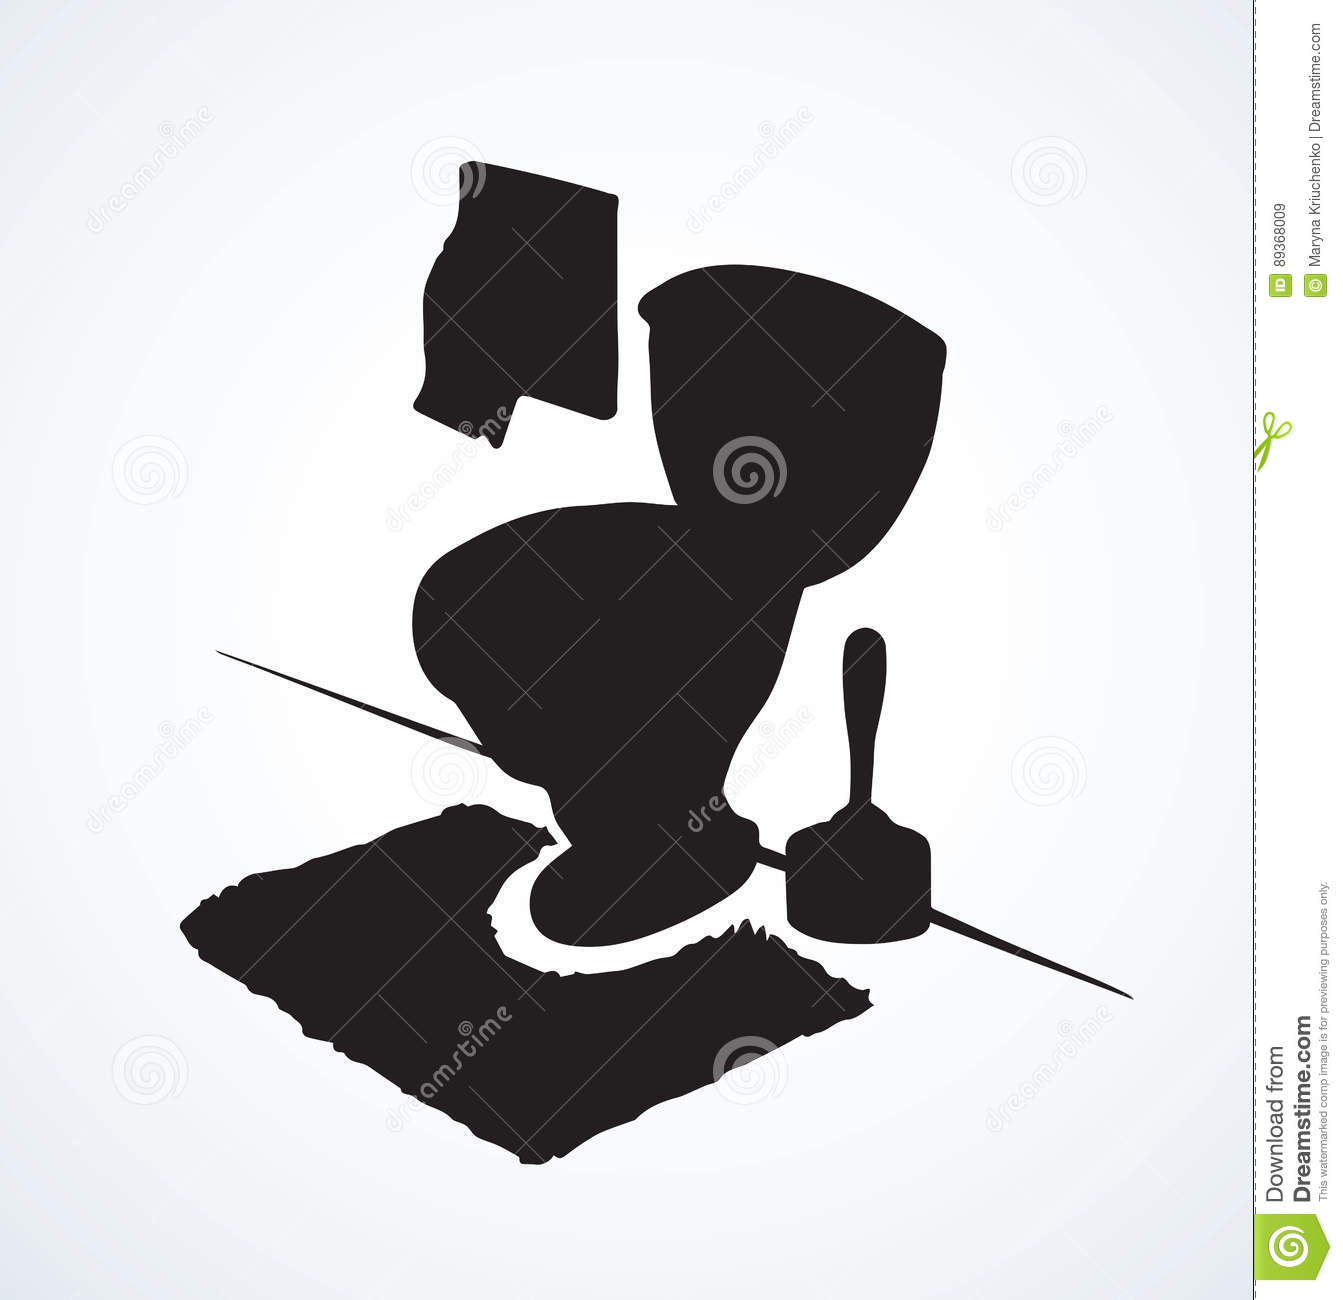 Toilet. Vector Drawing Stock Vector. Image Of Closeup